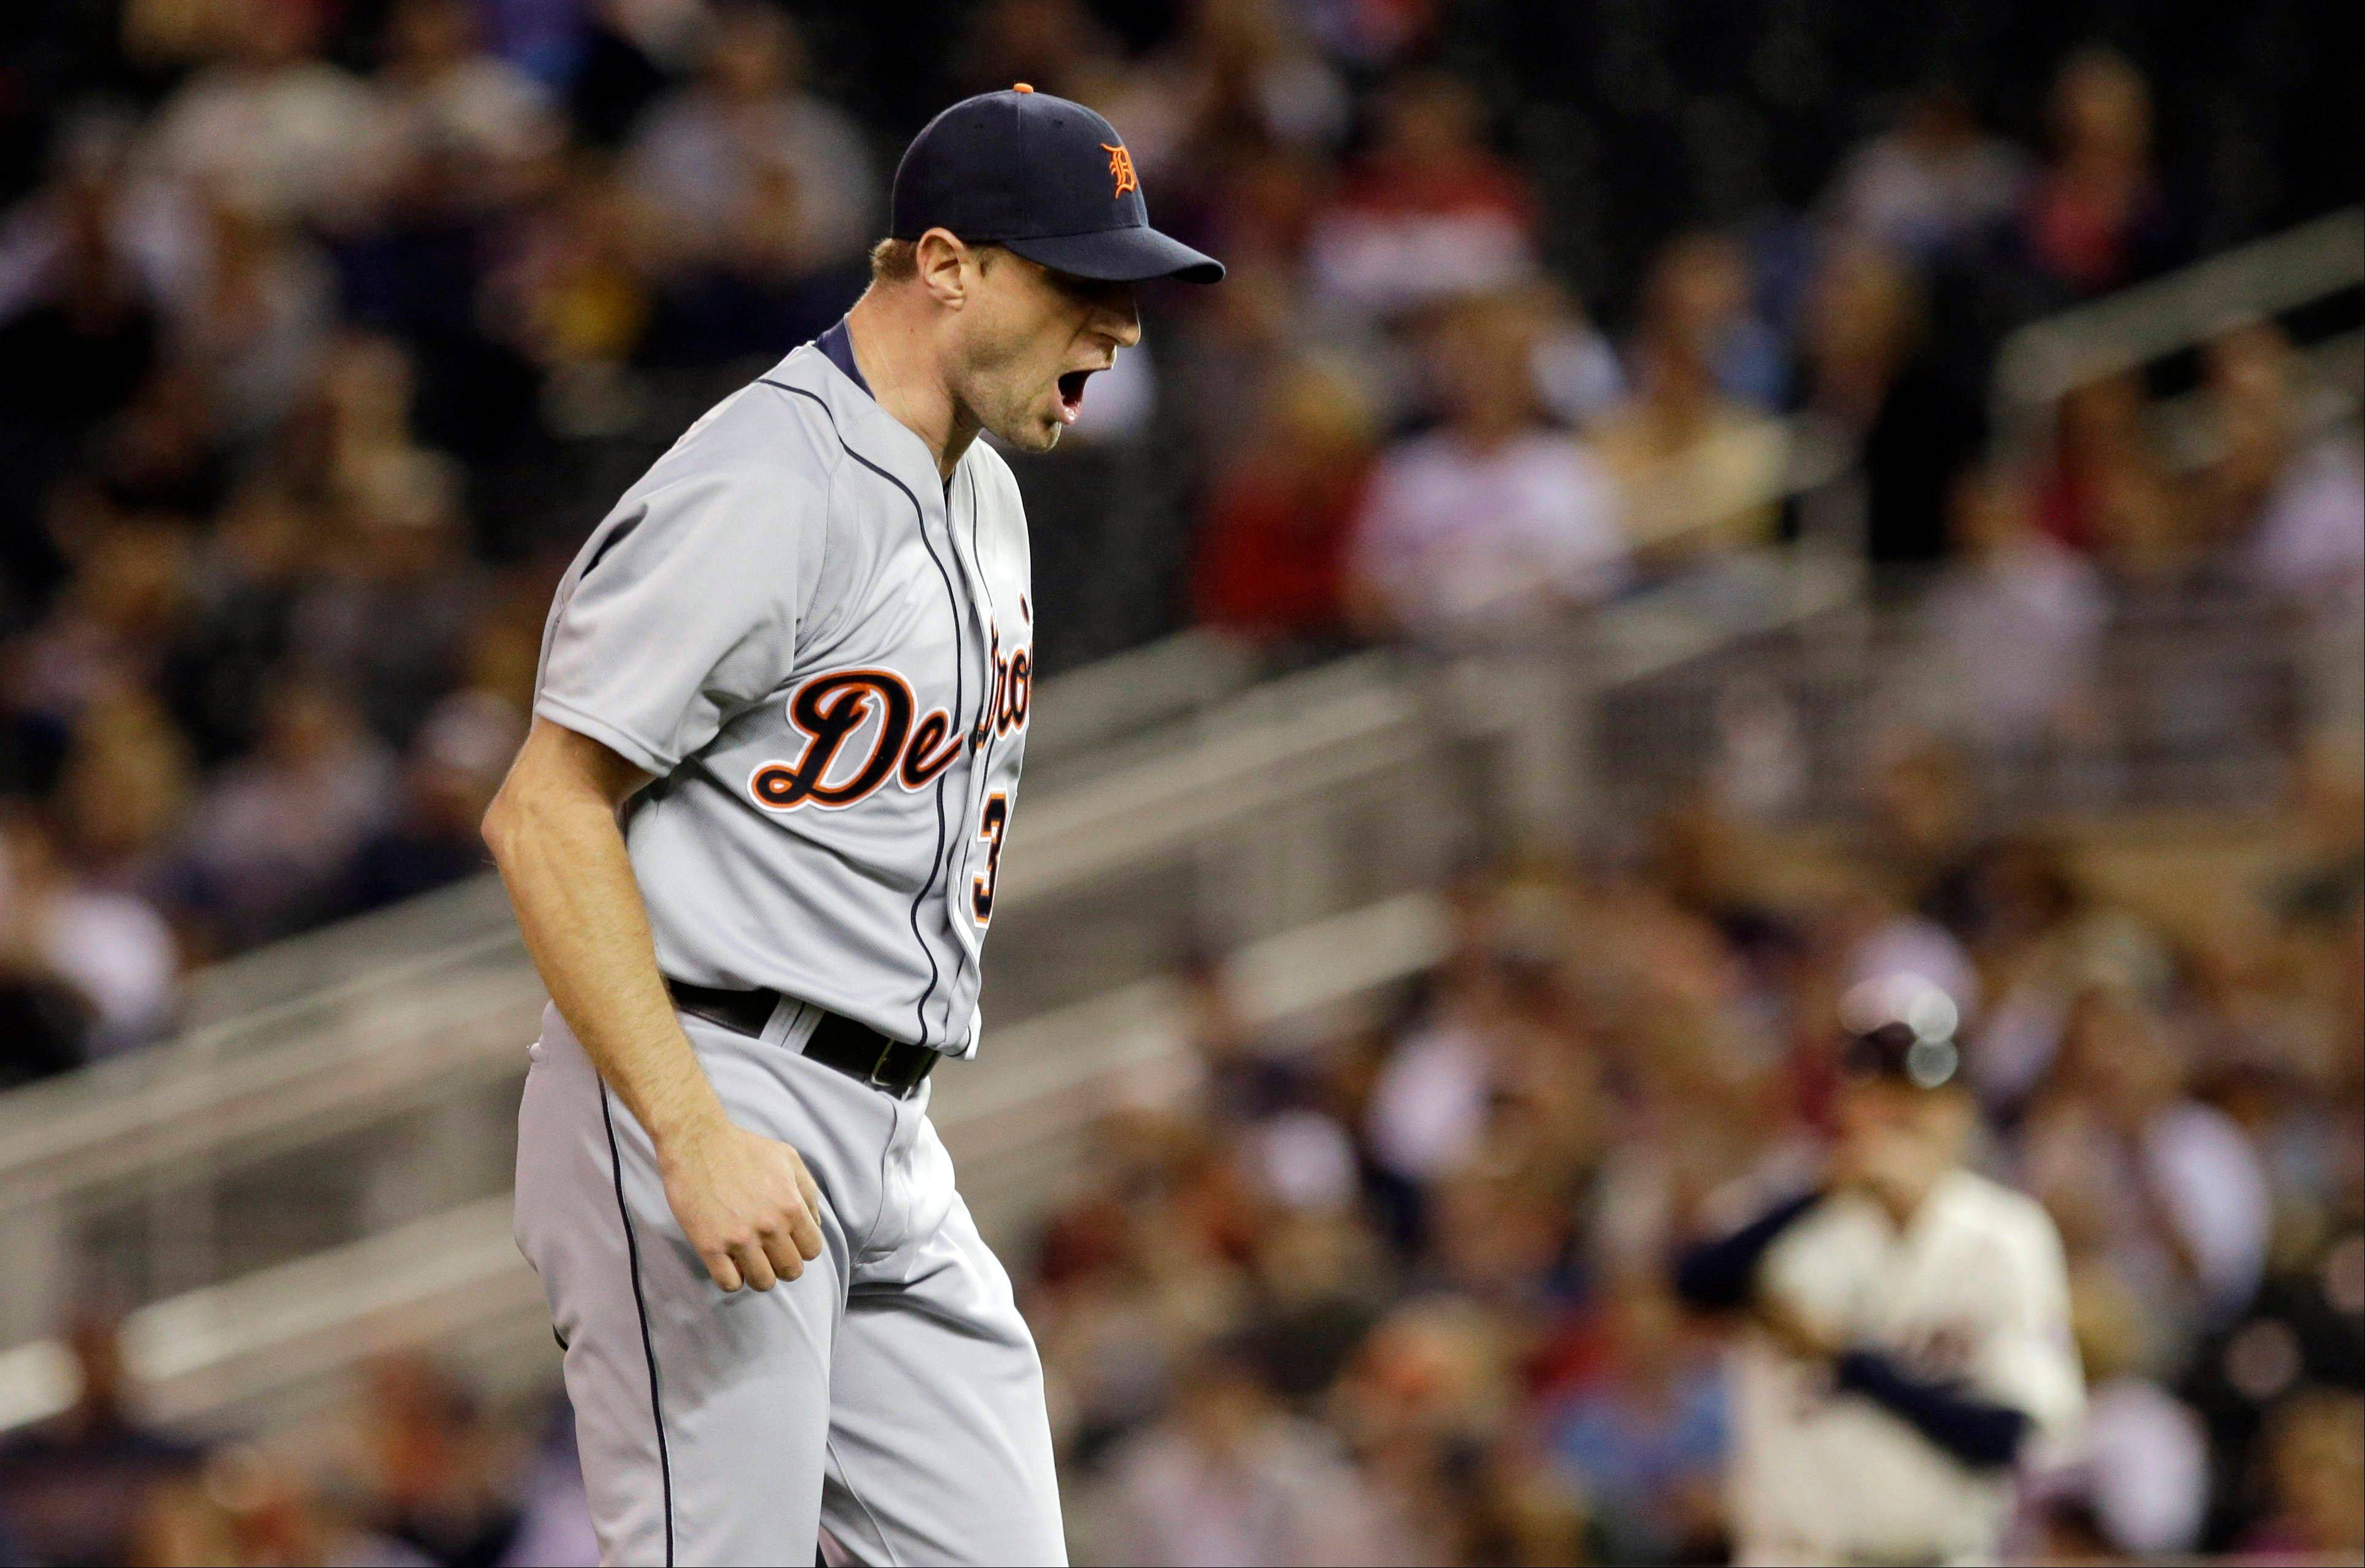 Detroit Tigers pitcher Max Scherzer reacts after he struck out Minnesota Twins� Josmil Pinto to end the first inning of a baseball game Wednesday in Minneapolis.